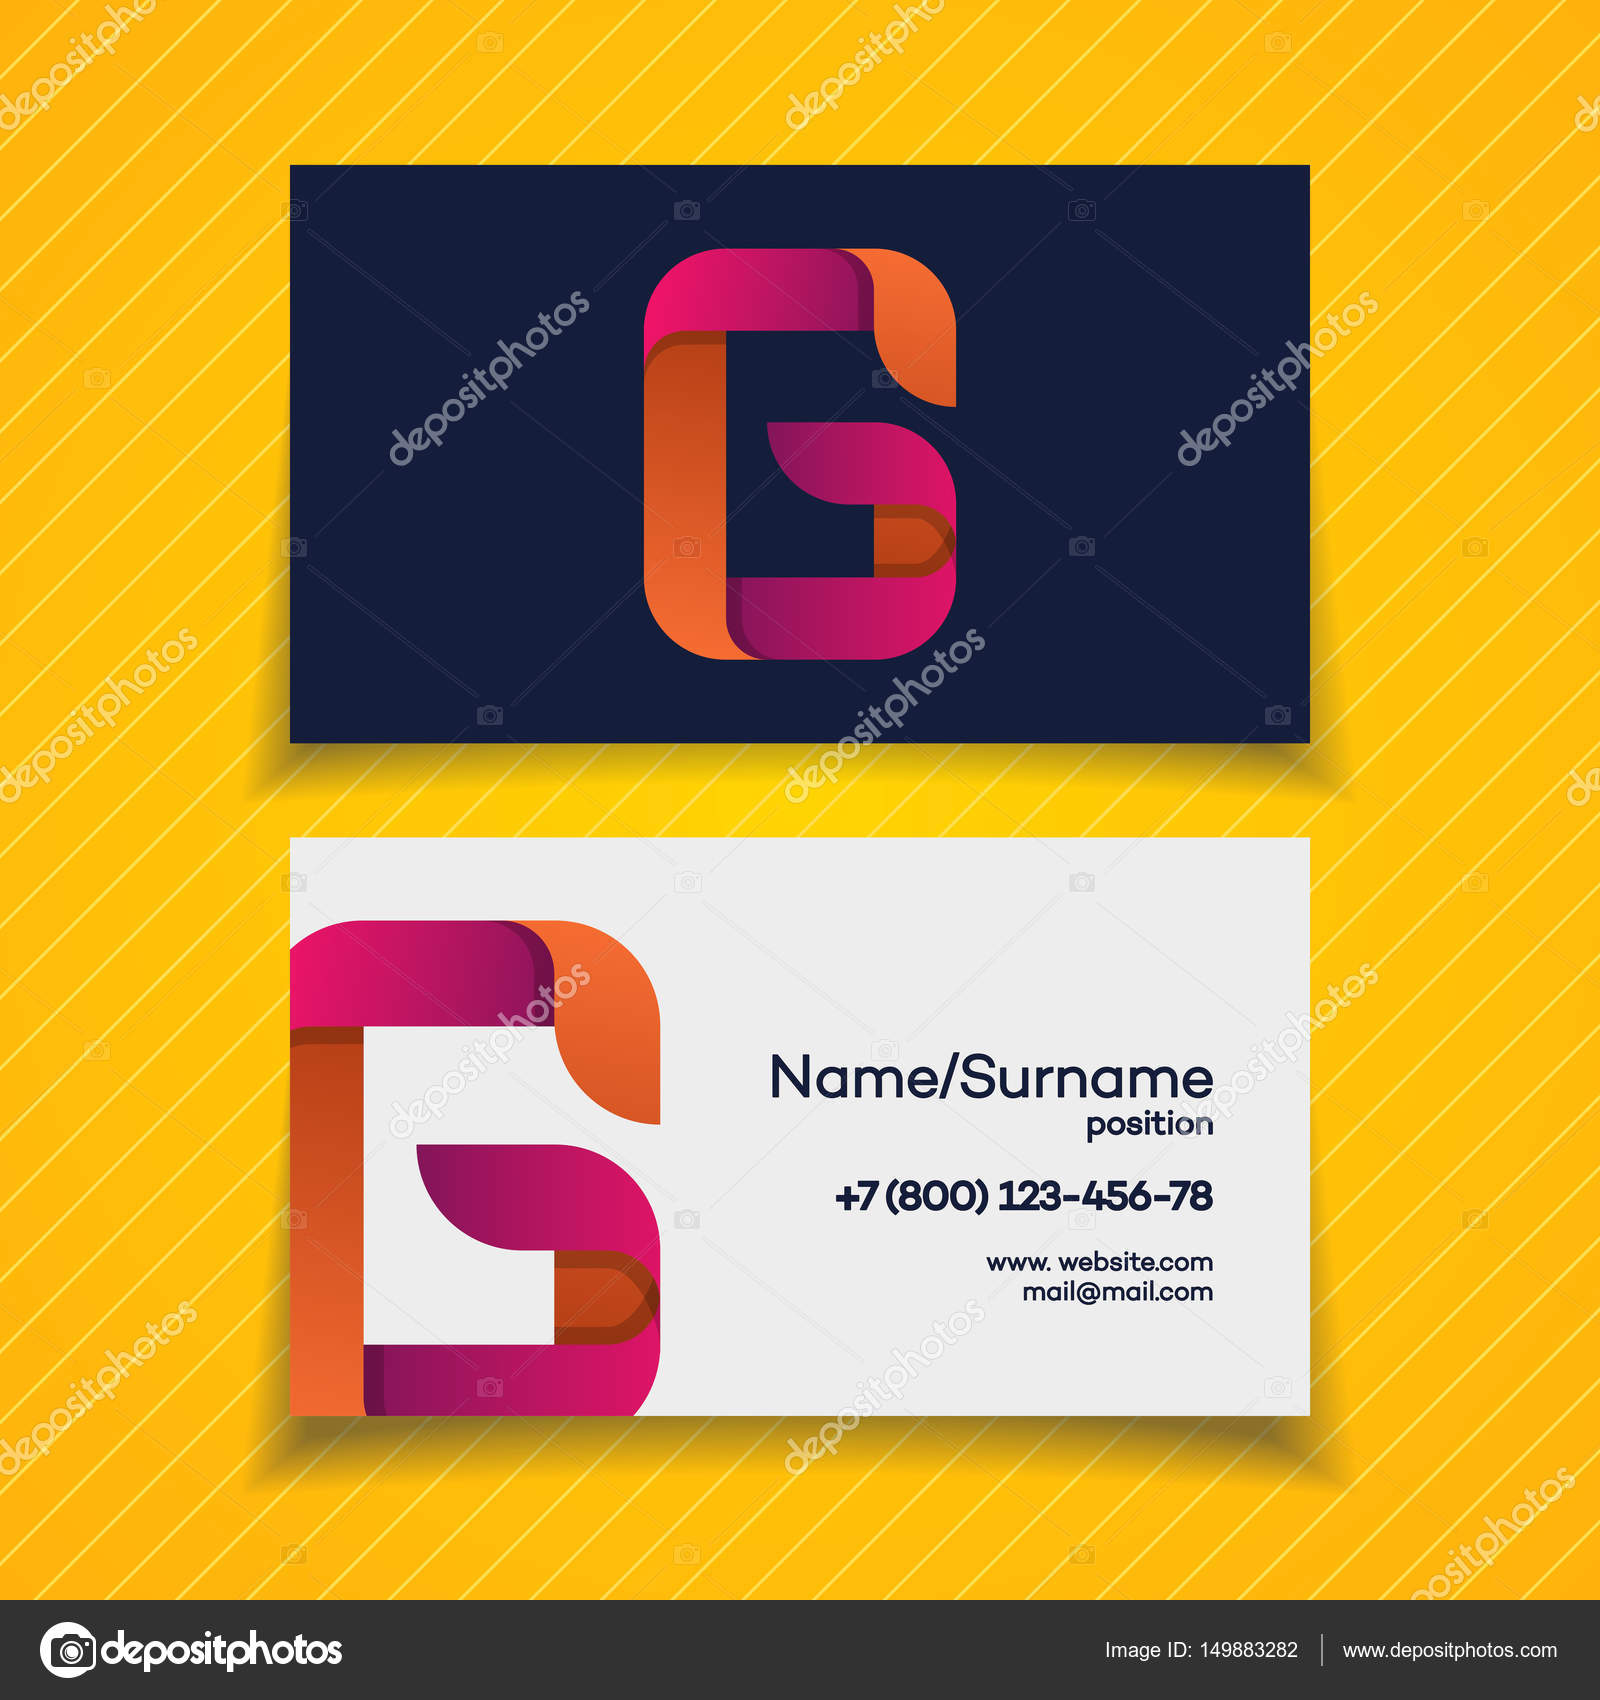 Business card design template with G letter logo modern color style ...